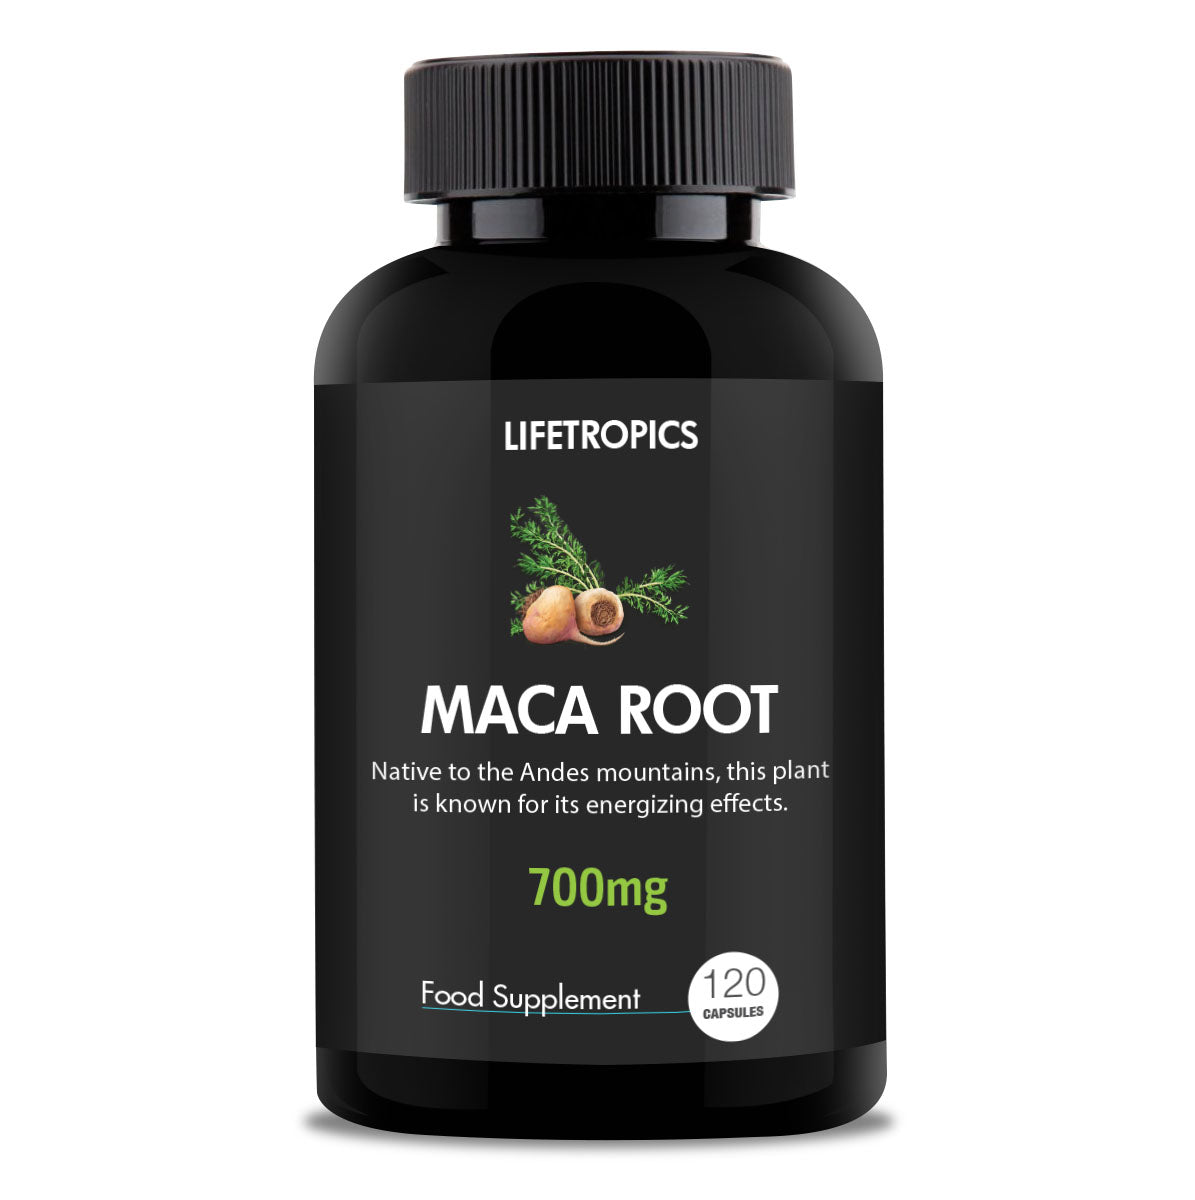 Maca Root extract, 700mg vegetable capsules - Lifetropics